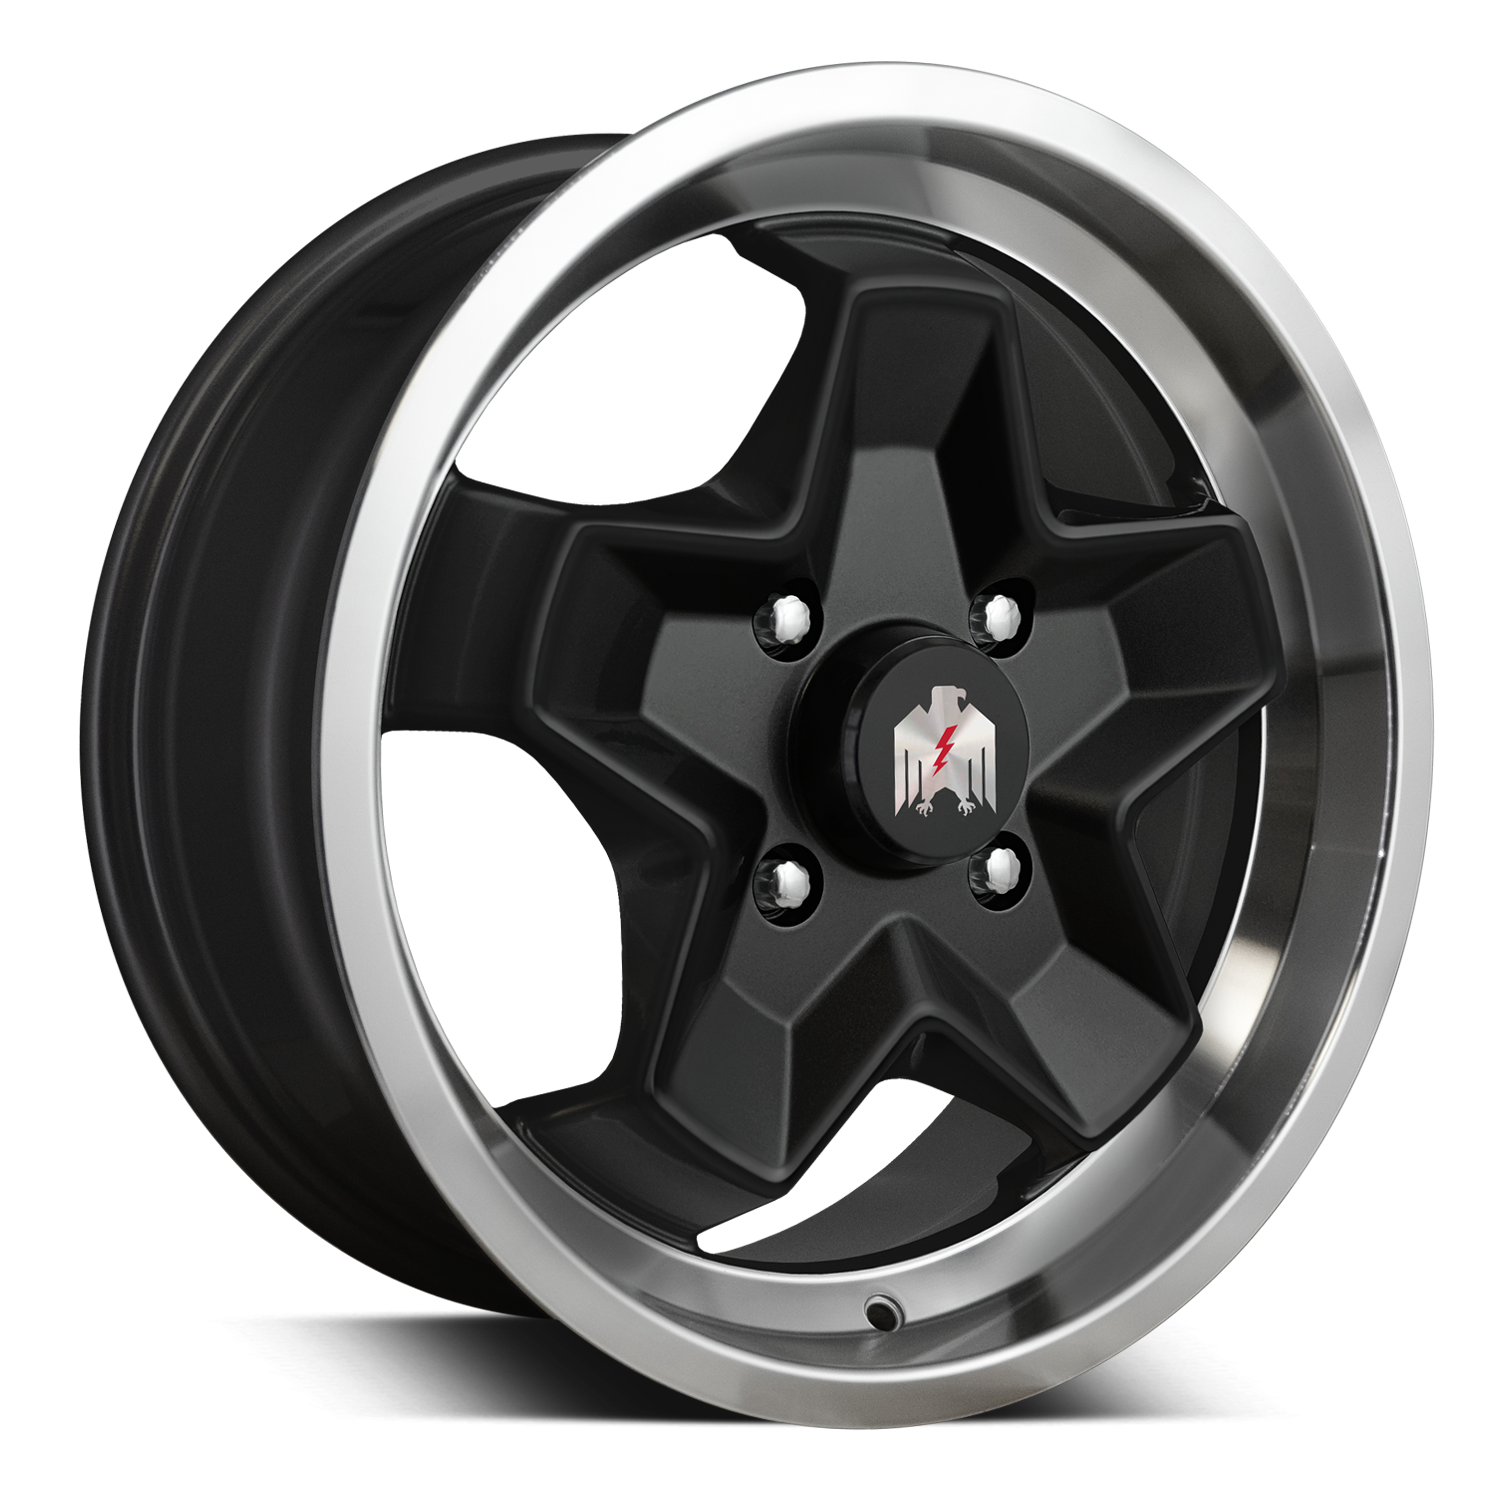 Shop the Klassik Rader Falcon Wheels 15 & 17 Inch